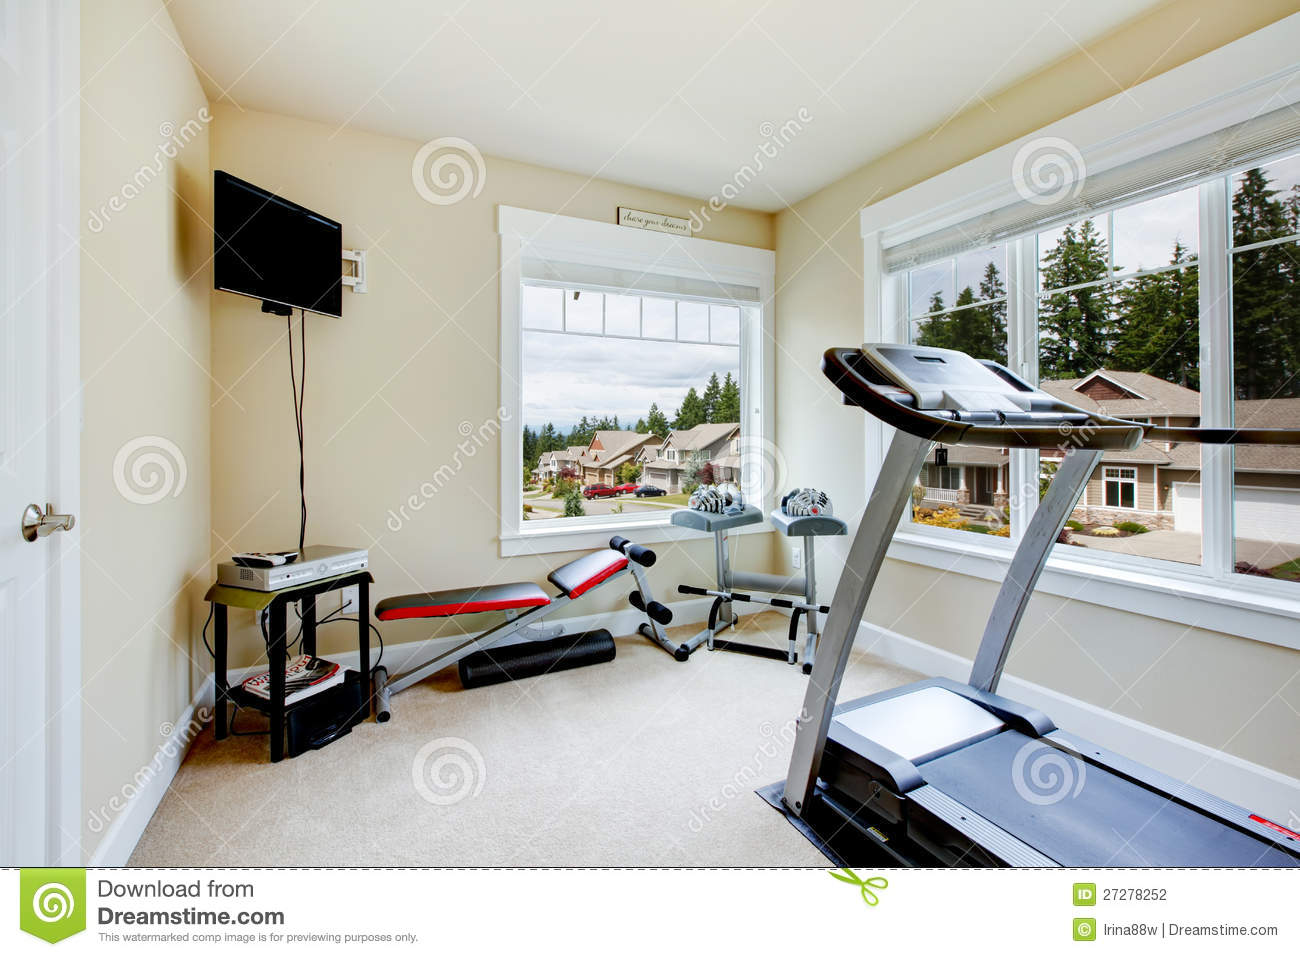 Home gym with equipment weights and tv. stock photo image of room